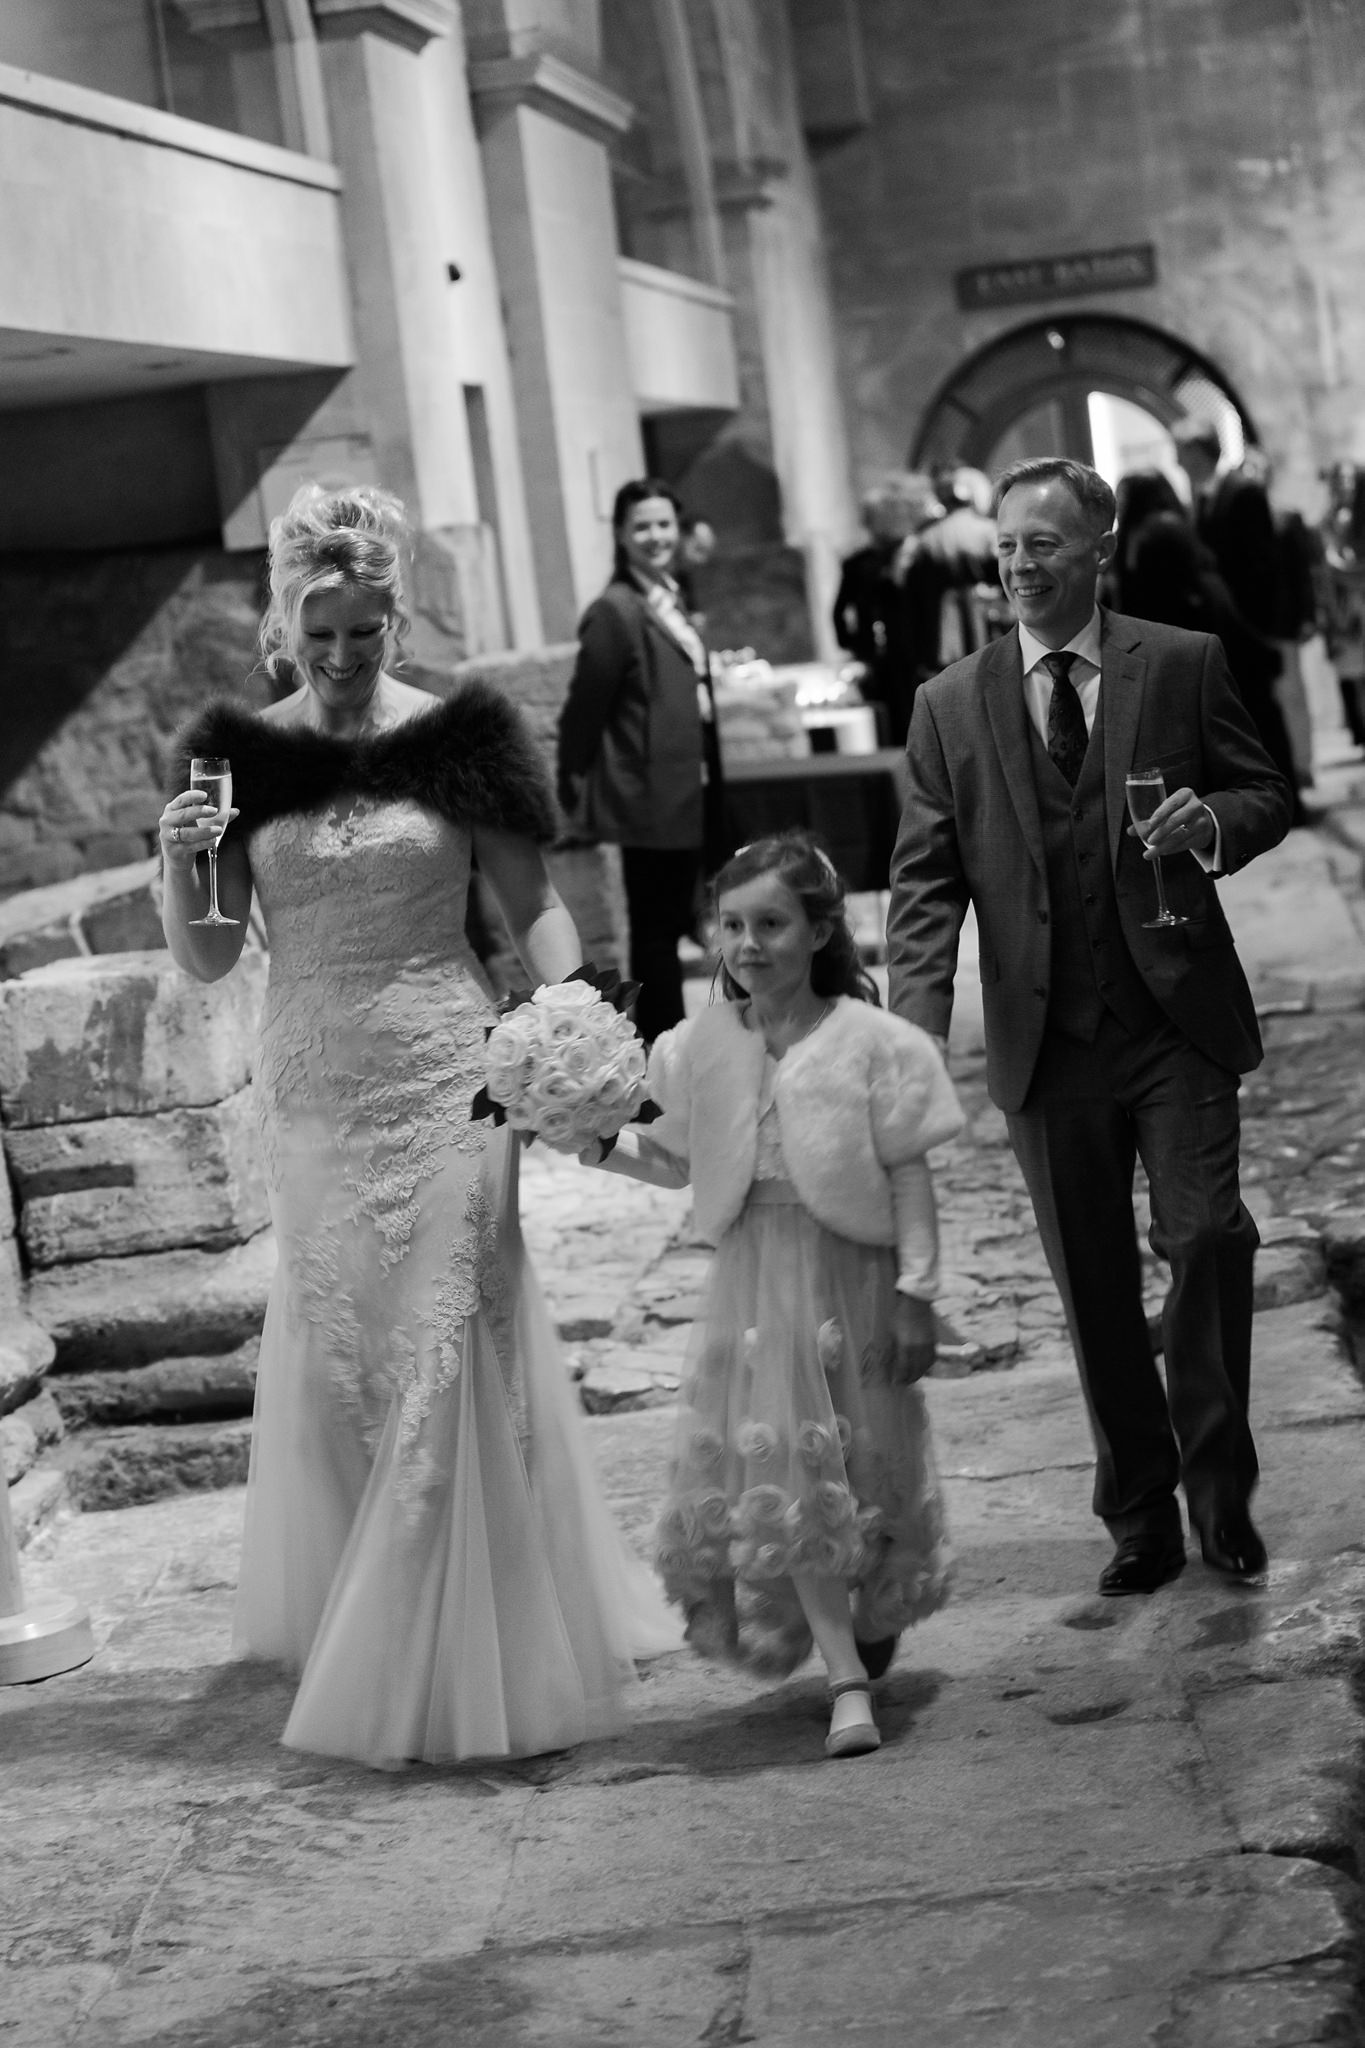 Bride and groom with their young bridesmaid